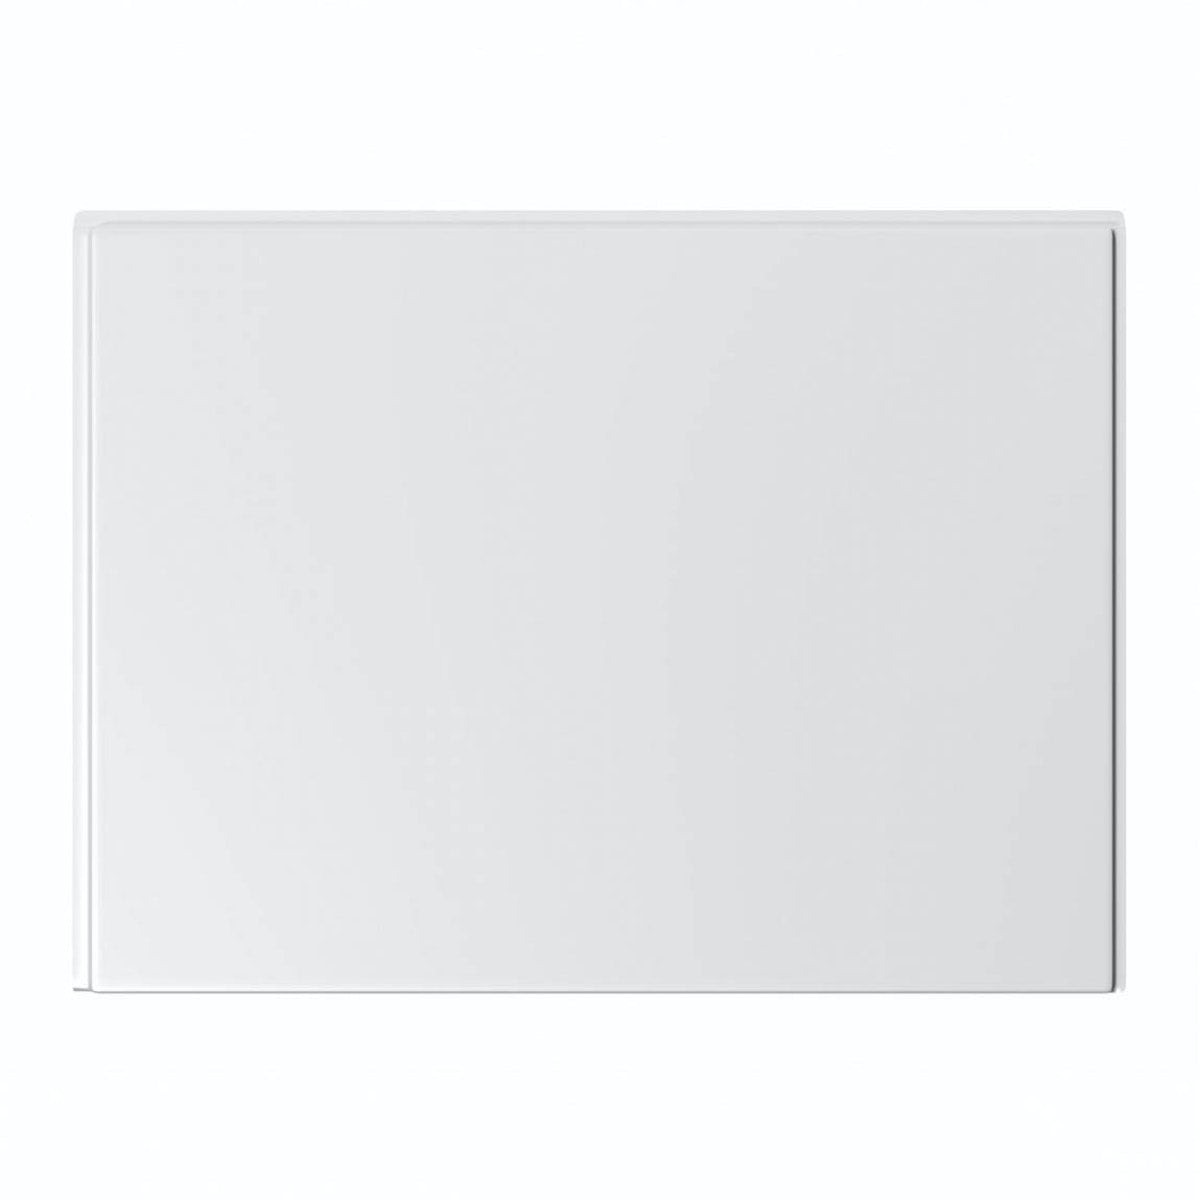 Acrylic Bath End Panel 700